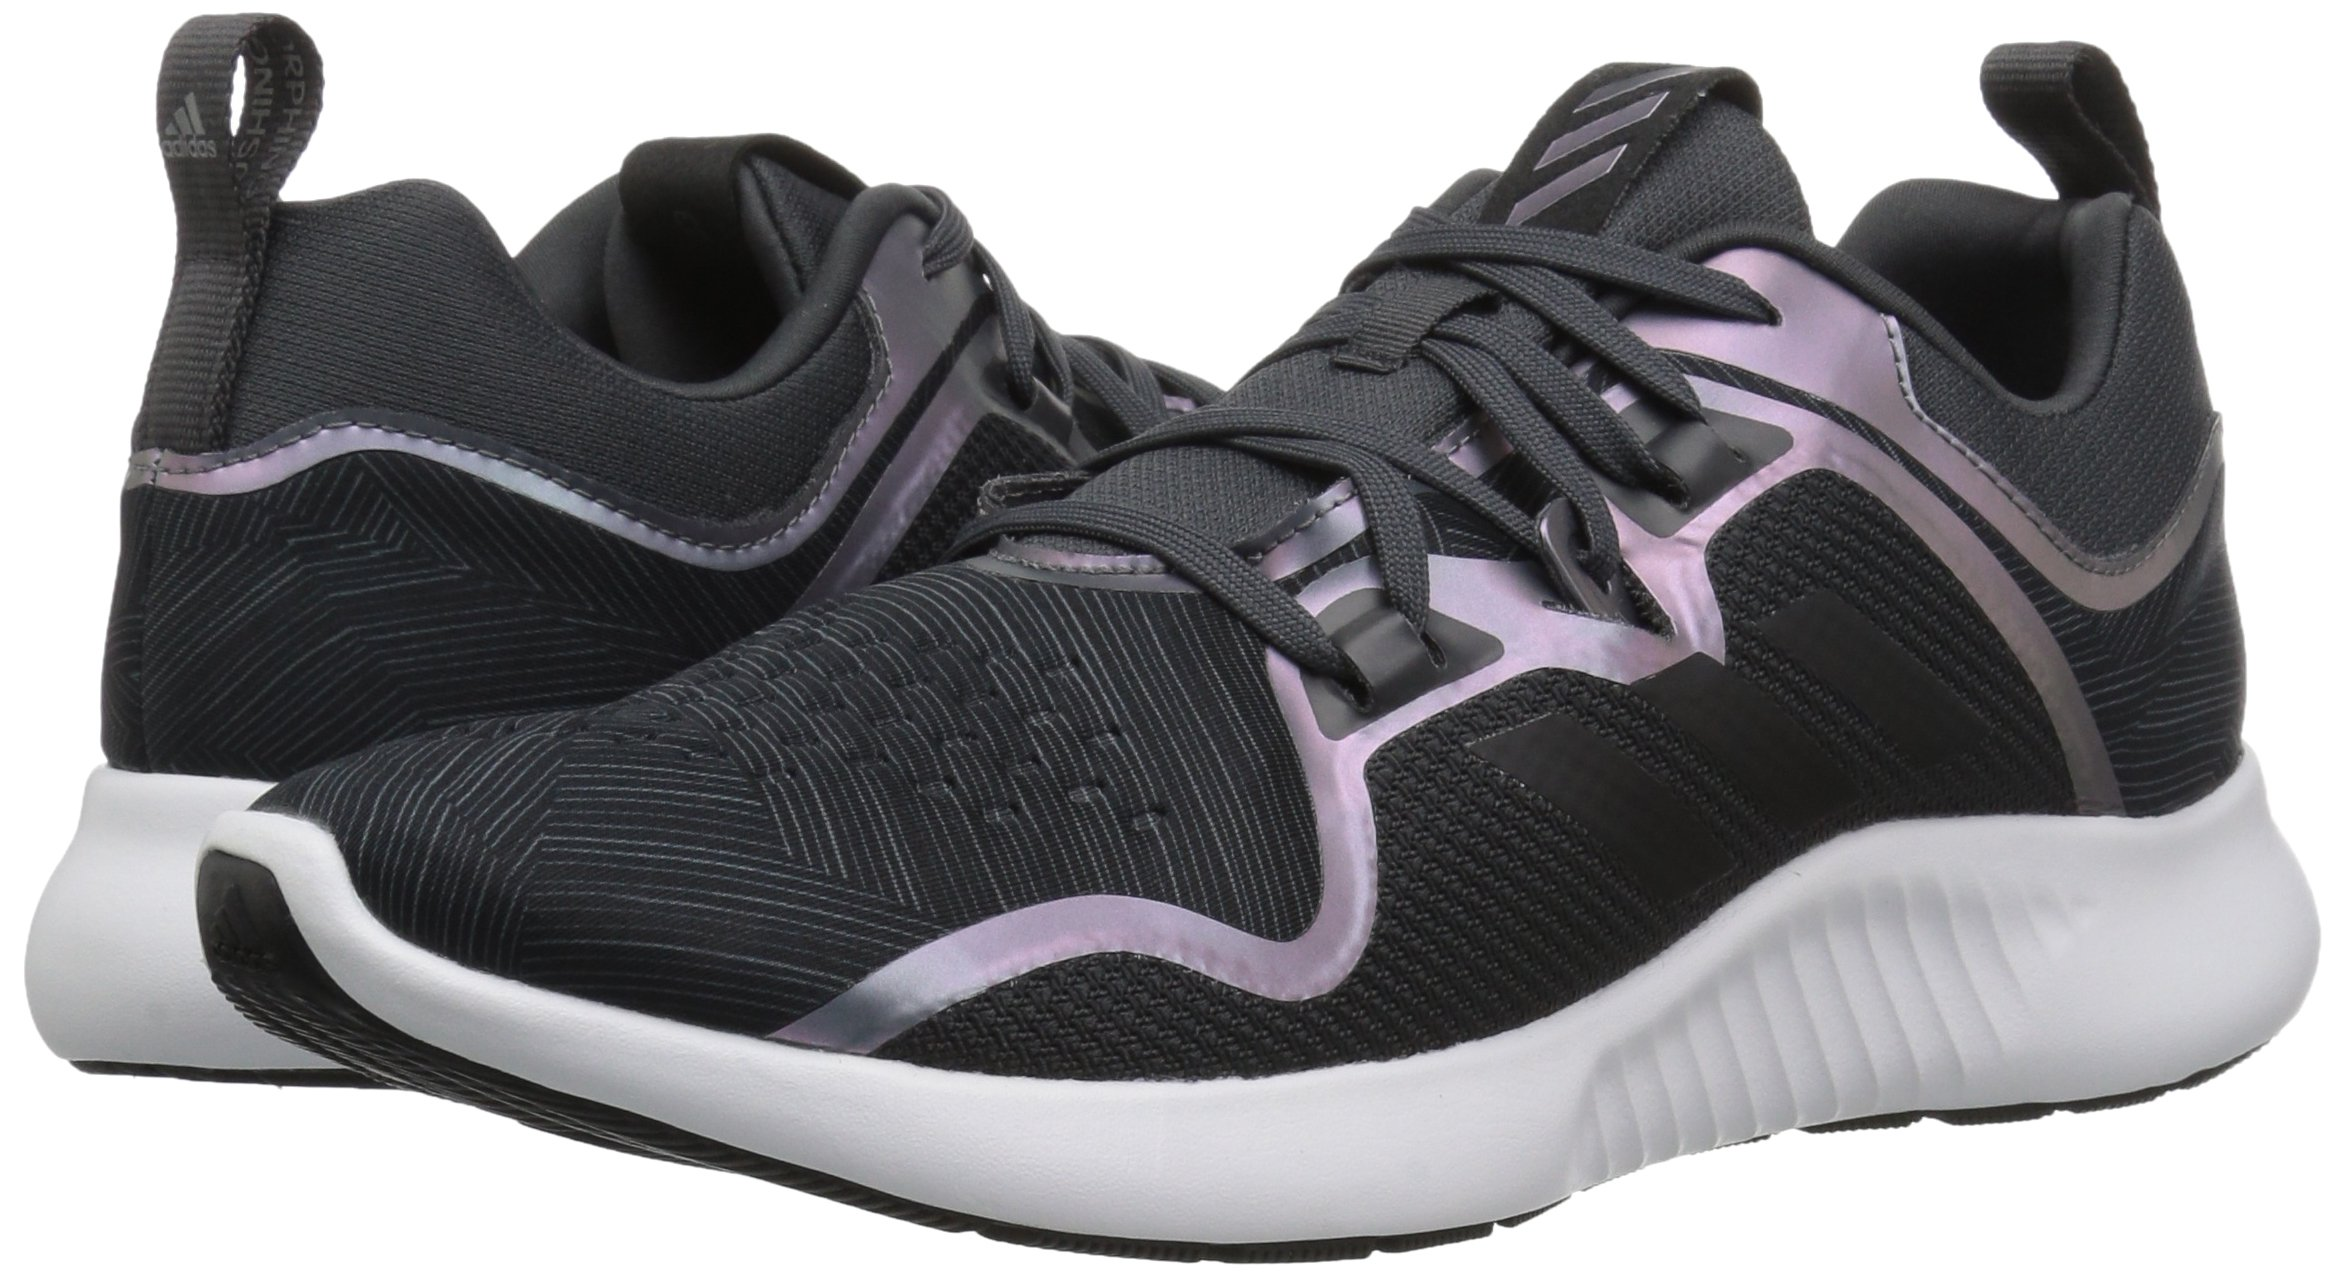 adidas Women's EdgeBounce Running Shoe Carbon/Black/Night Metallic 5.5 M US by adidas (Image #5)